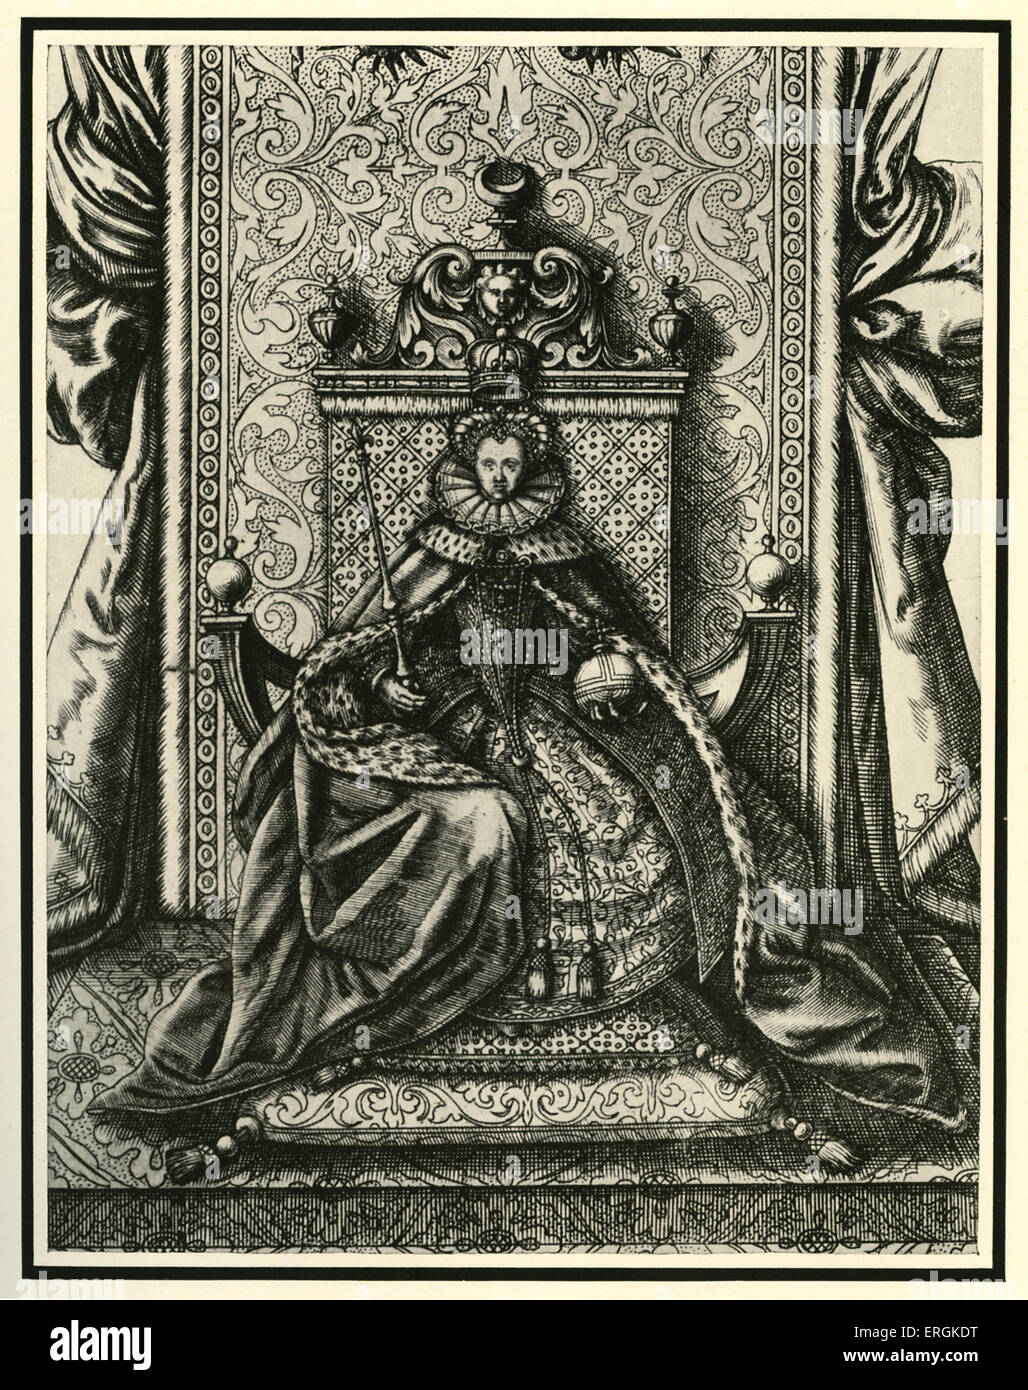 Queen Elizabeth I (1533-1603) seated in Parliament. Prior to Cromwell it  was still traditional for Parliament to regularly